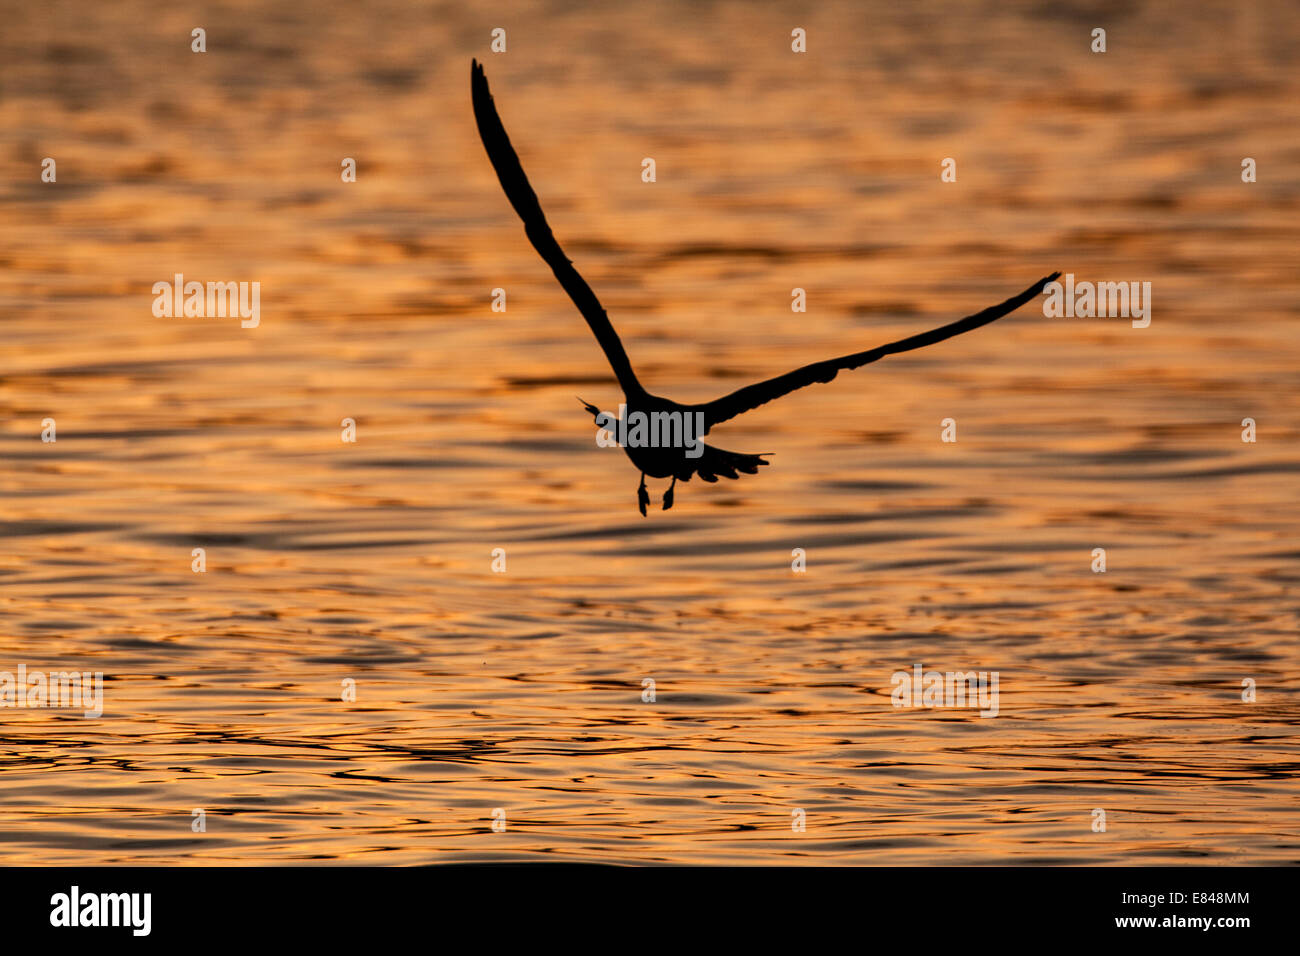 Silhouette of a flying gull over water colored by the glow of a sunset. Stock Photo